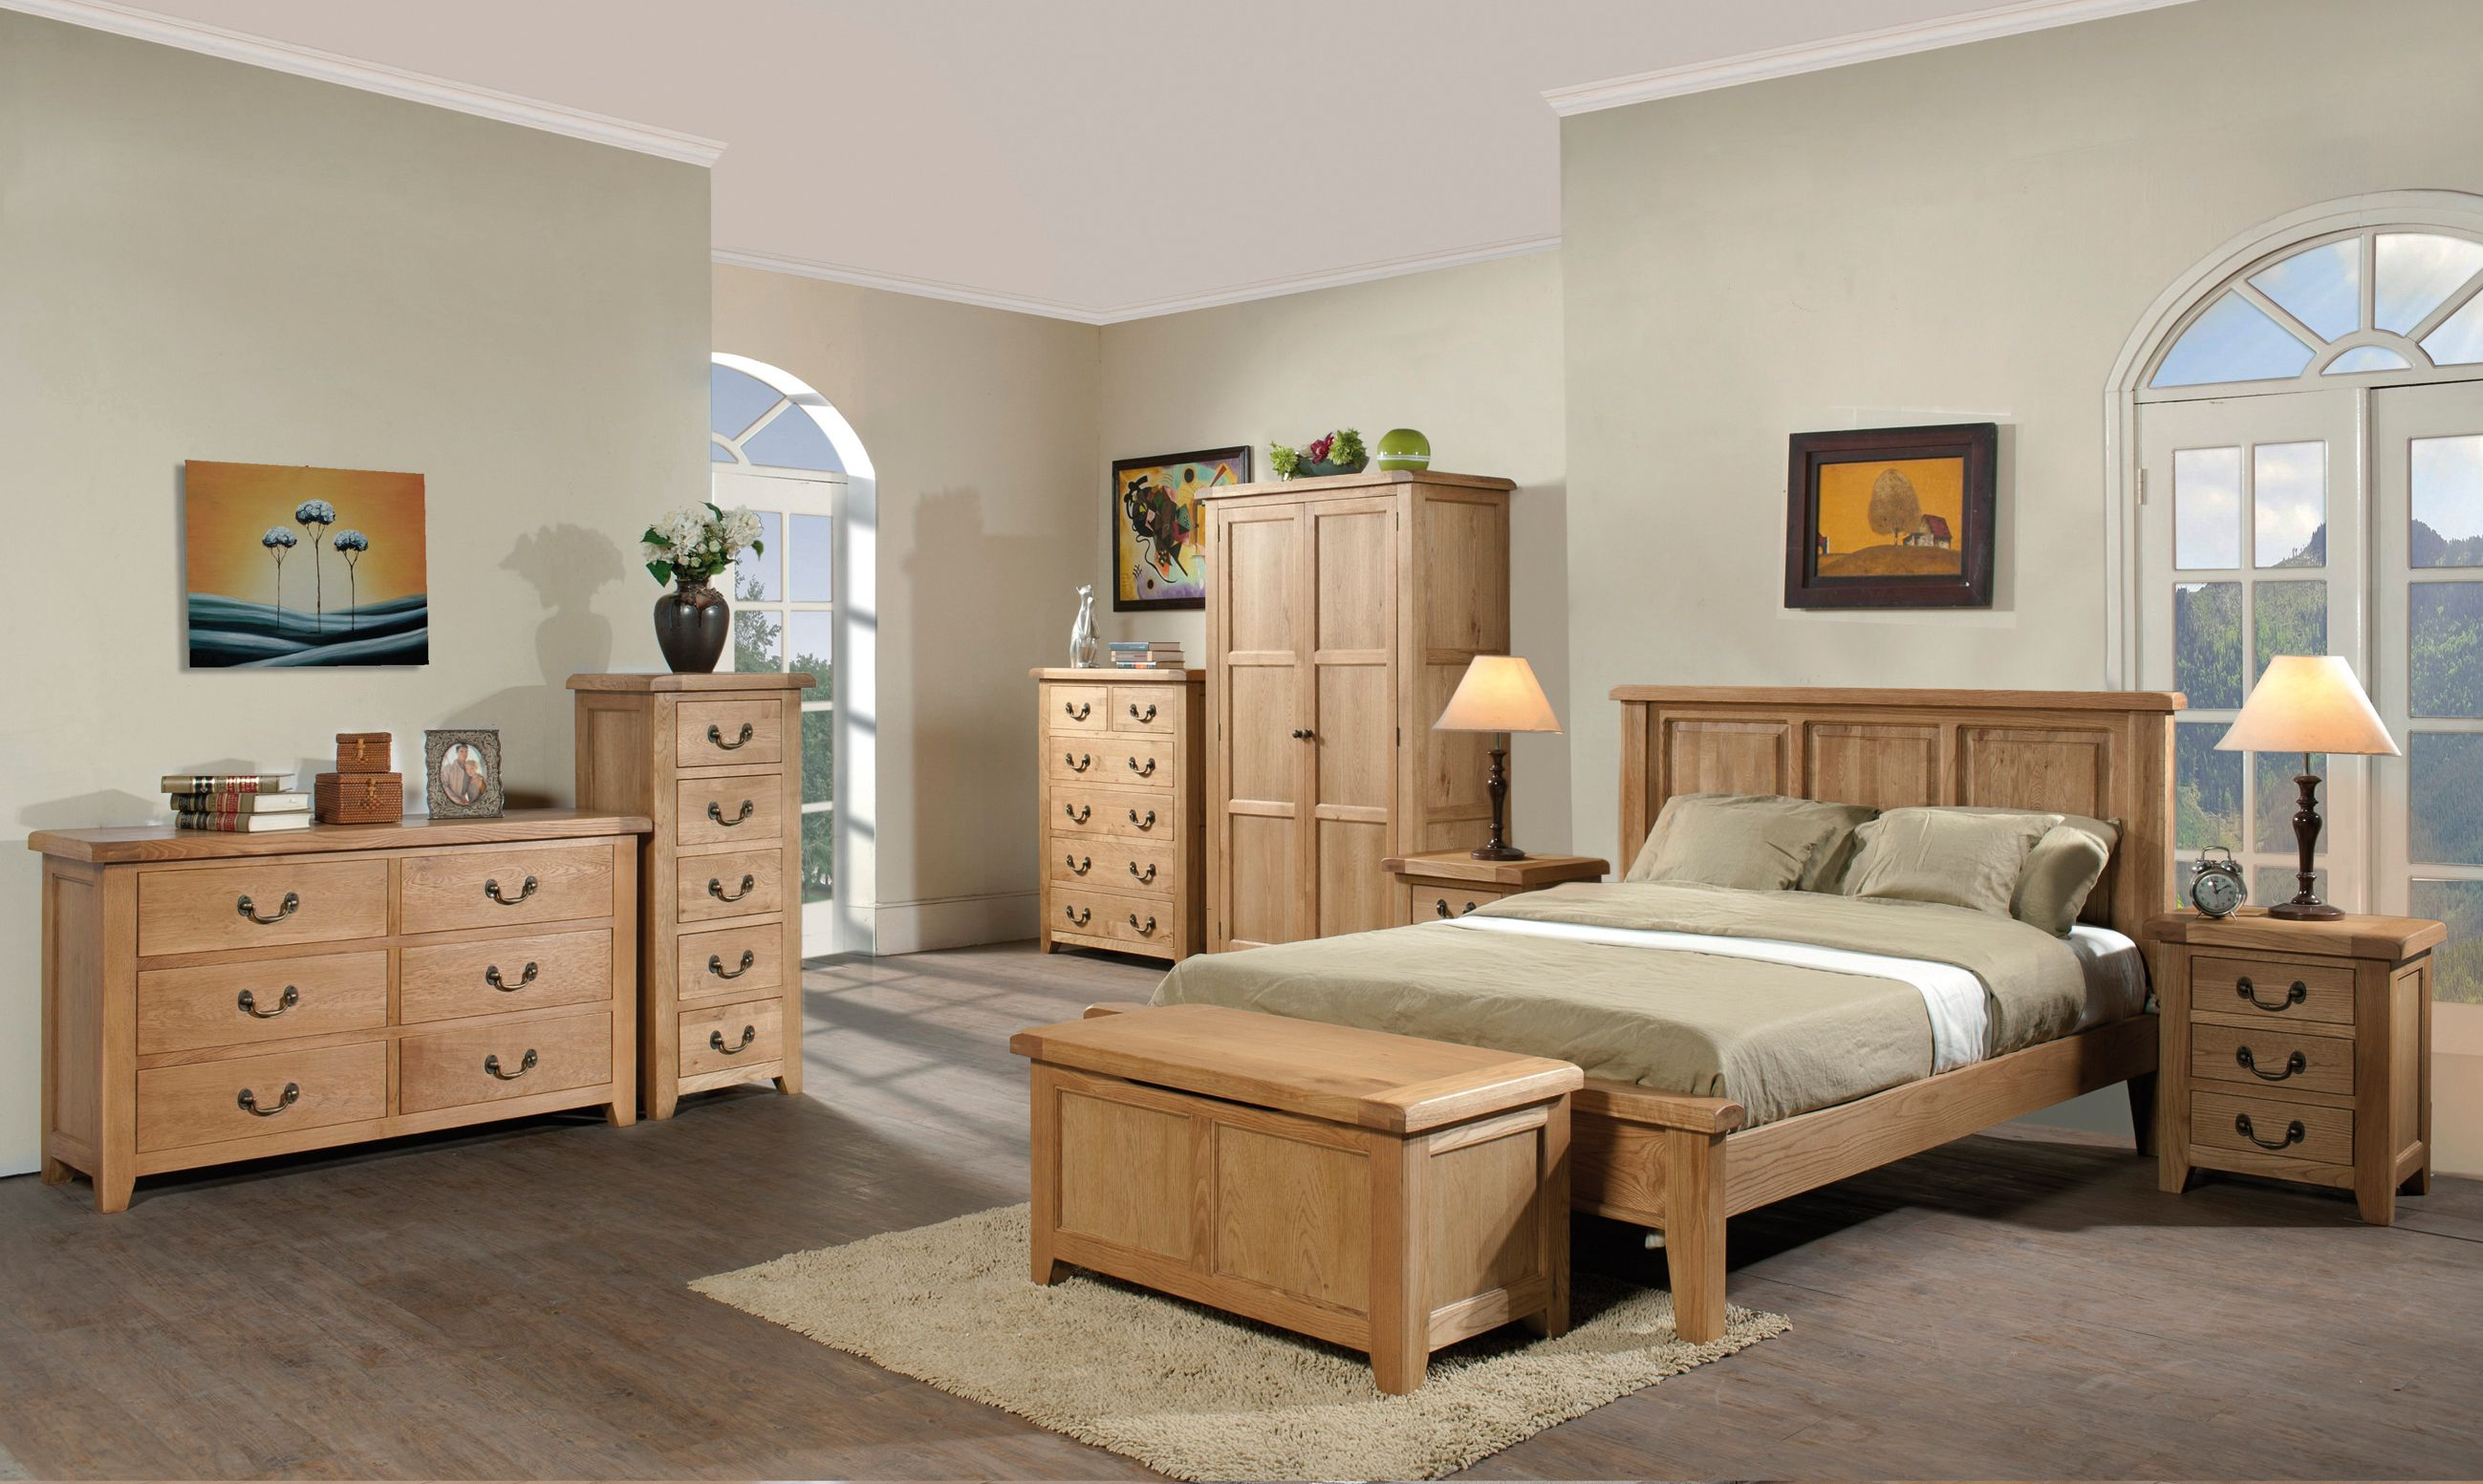 Devonshire Pine - SUMMERFIELD - Bedroom